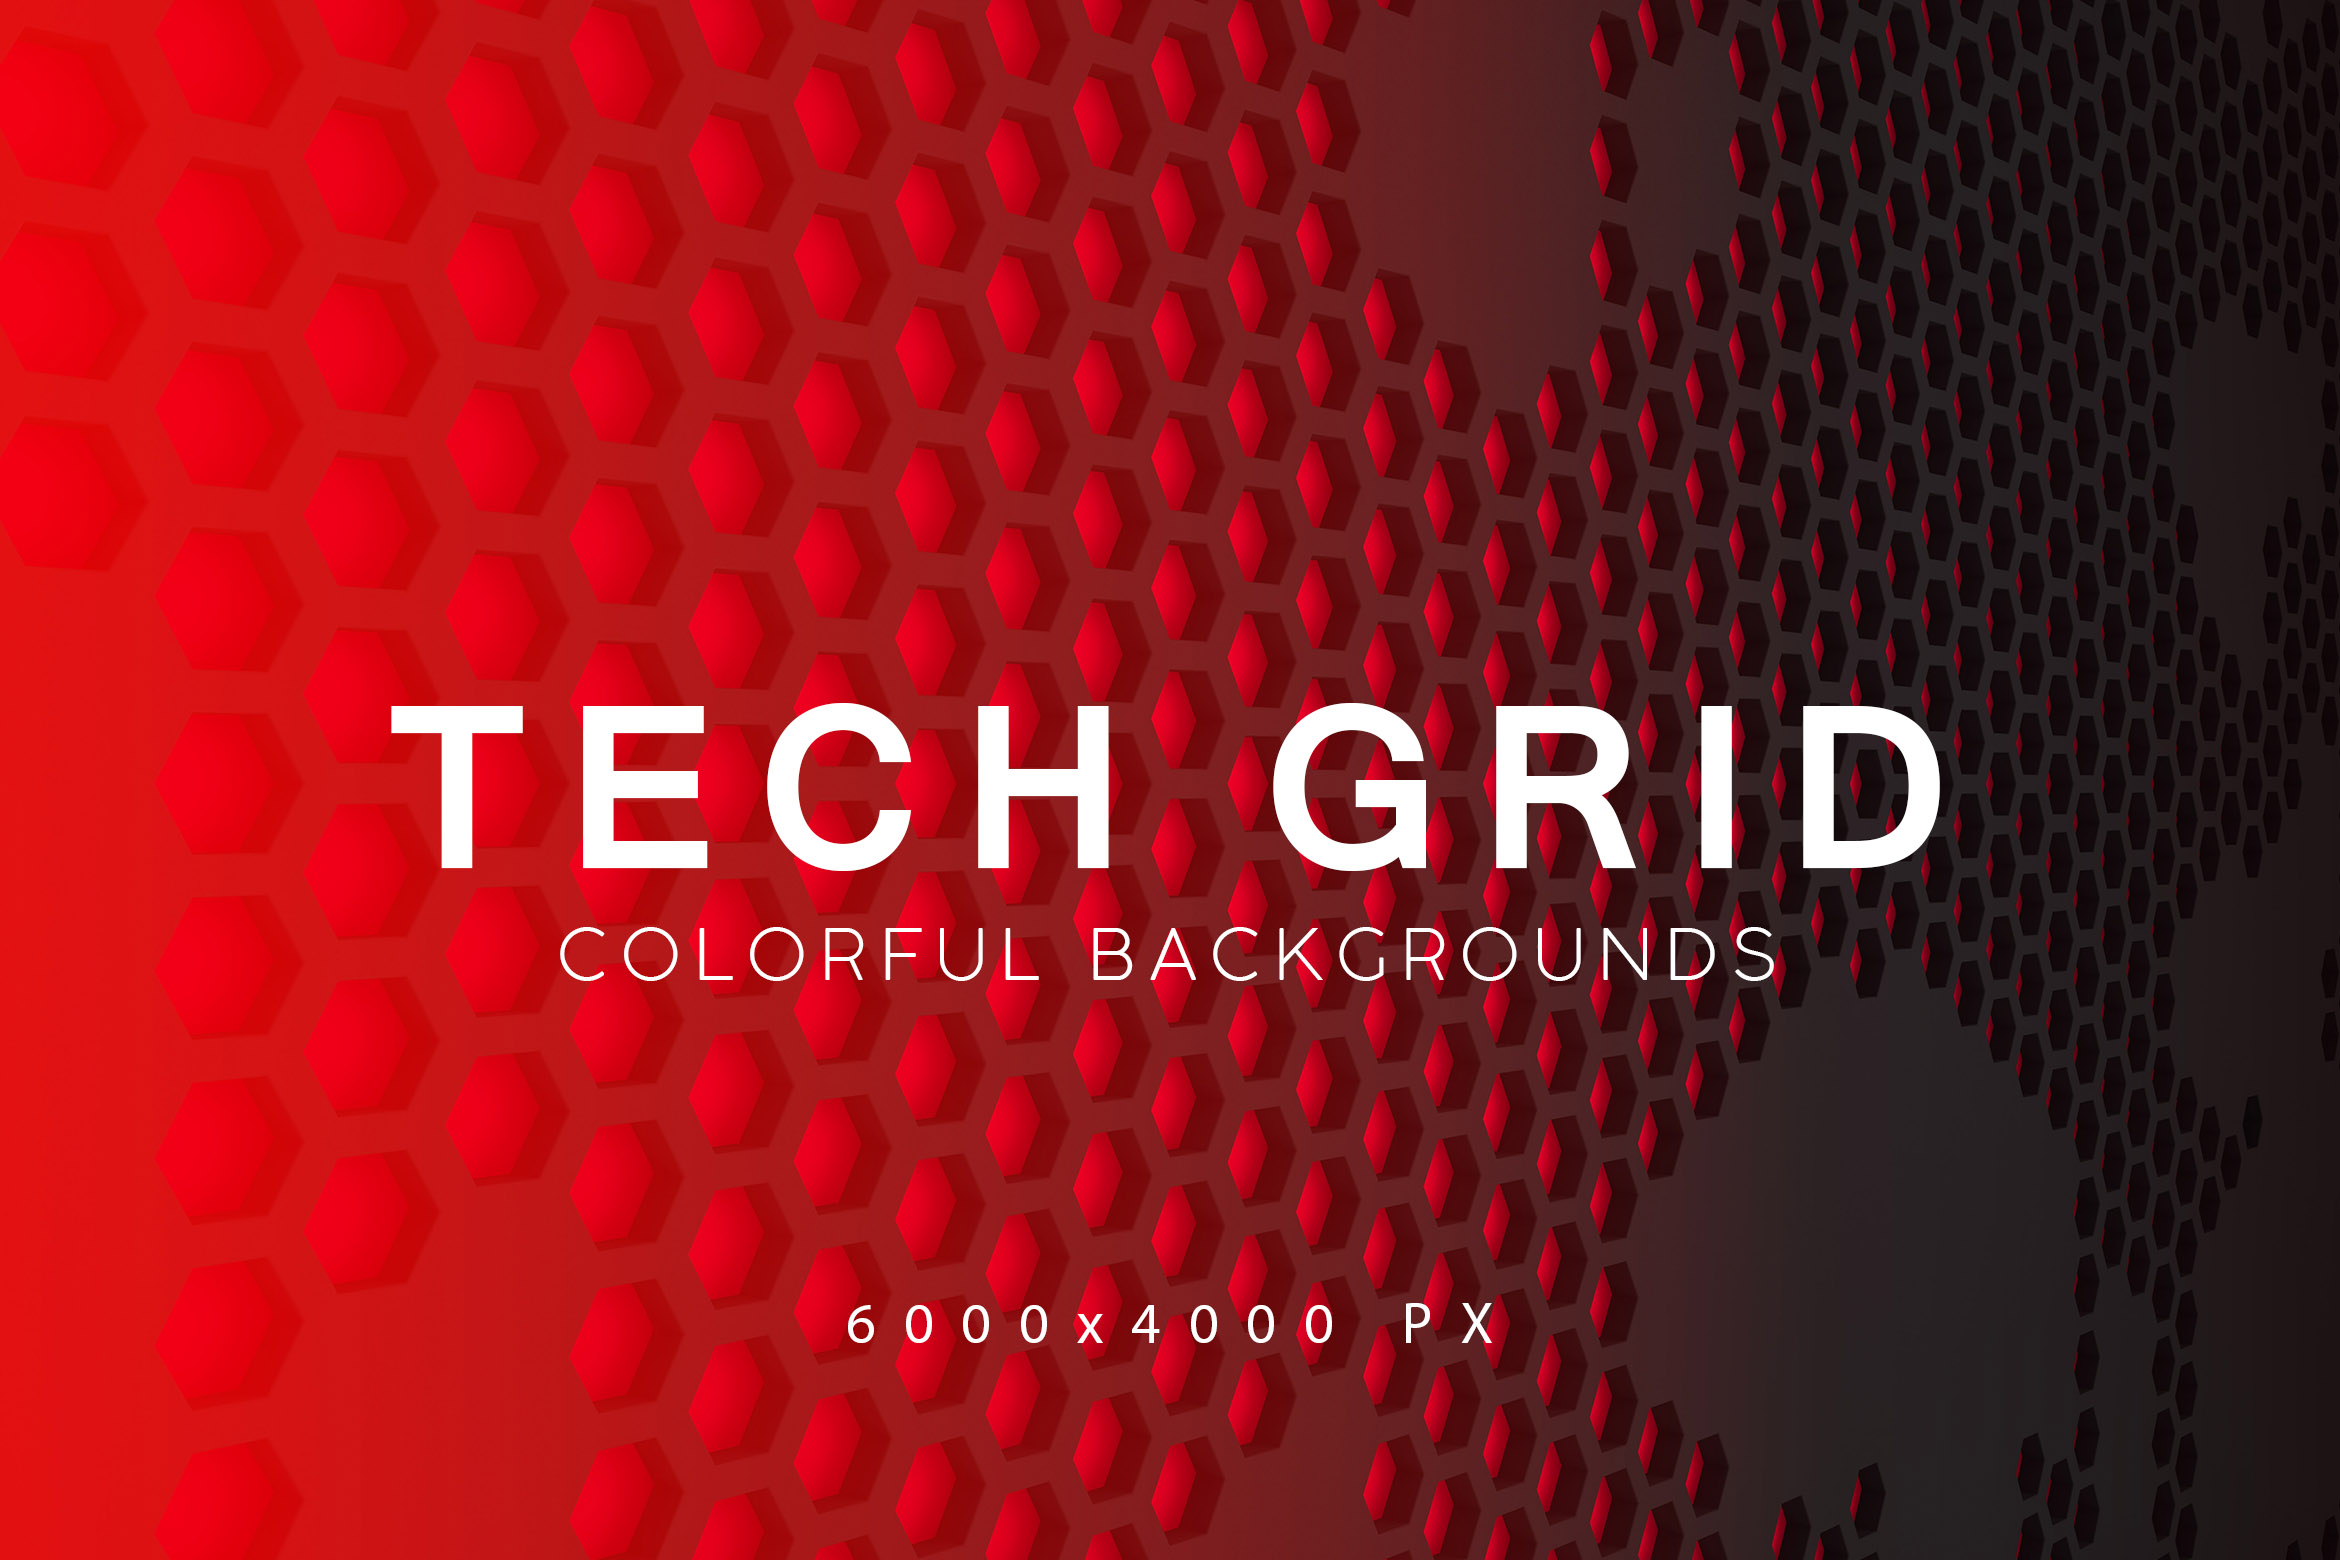 Download Free Tech Grid Backgrounds Graphic By Artistmef Creative Fabrica for Cricut Explore, Silhouette and other cutting machines.